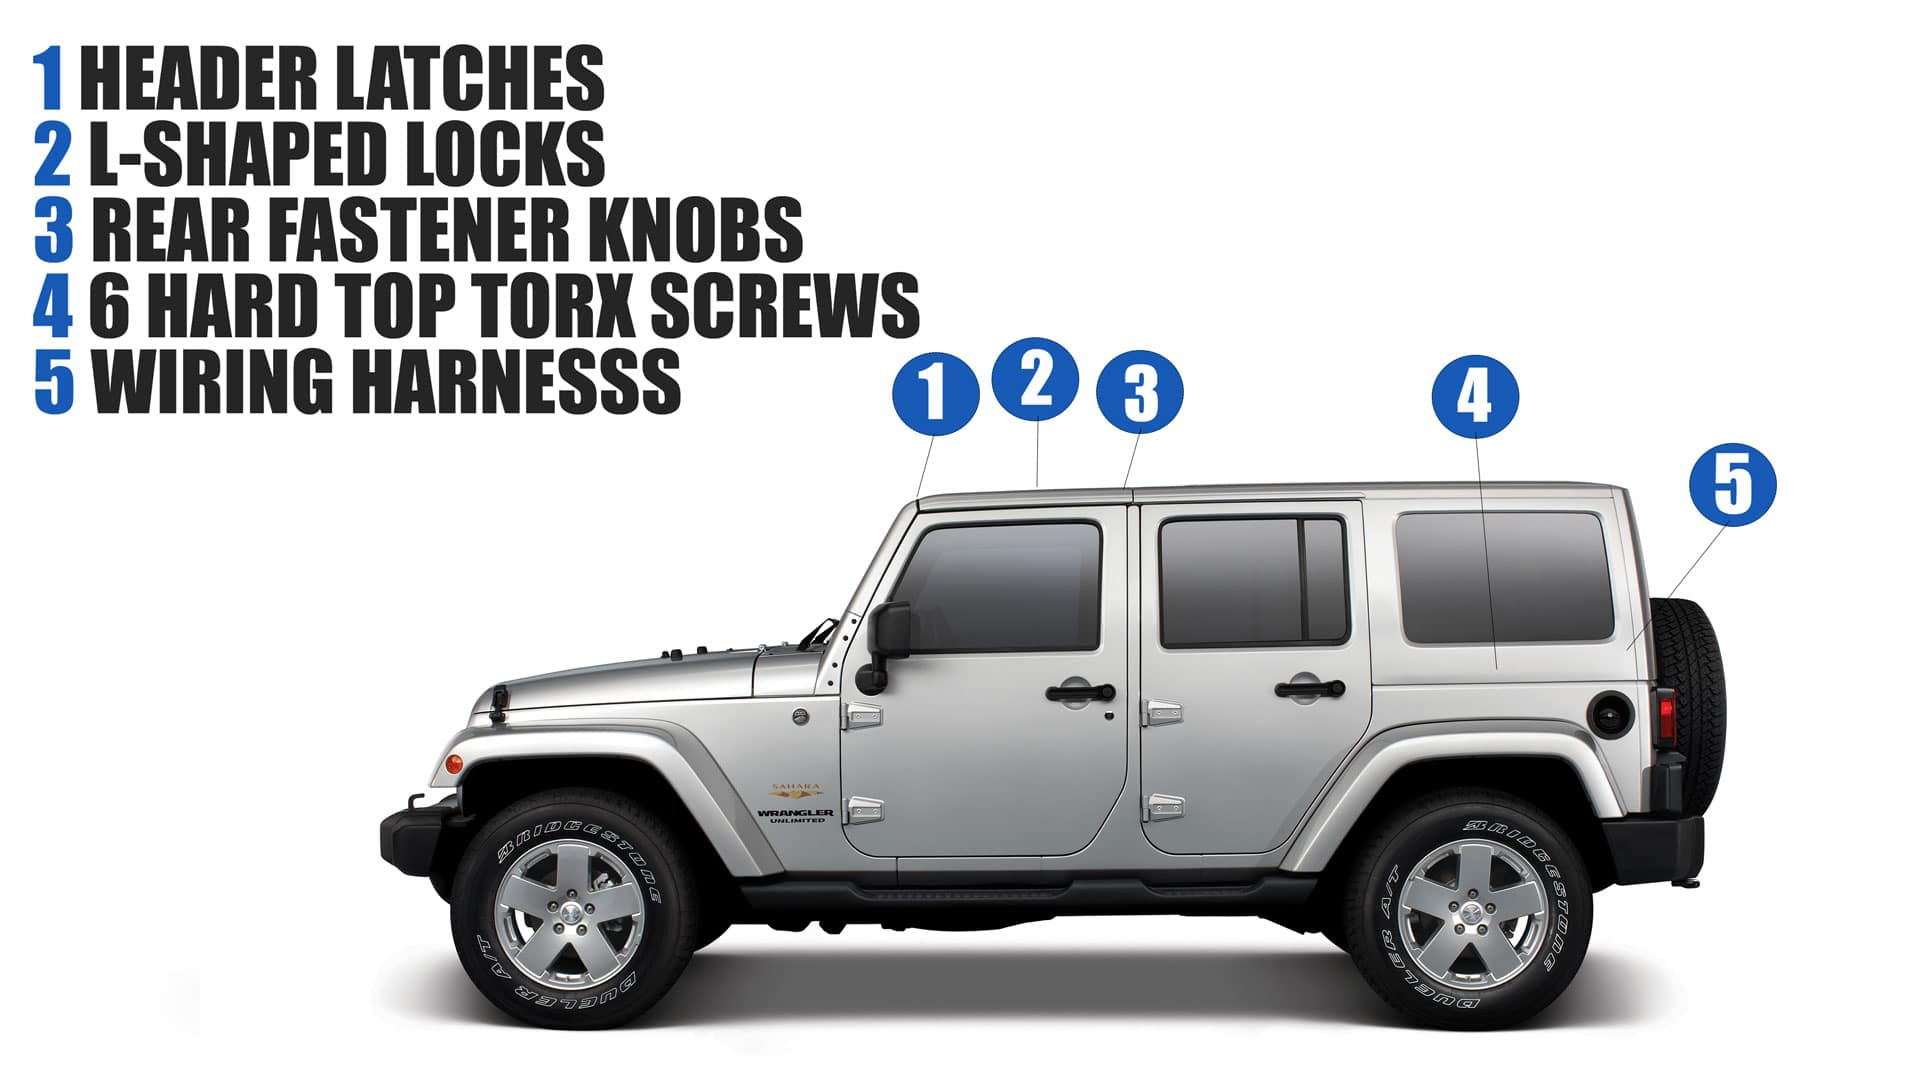 Remove The Hard Top On Jeep Wrangler Faqs Safford Of Winchester Power Wheels Wiring Harness Diagram